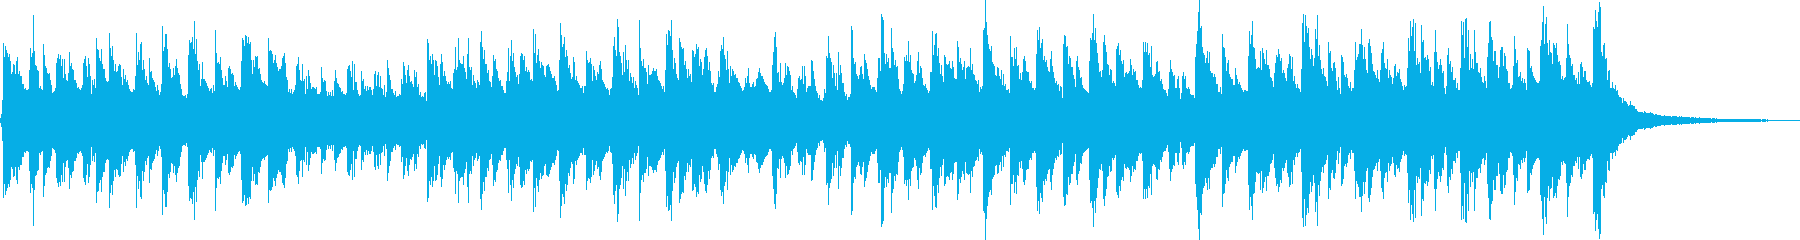 Comical music box jingle for children's reproduced waveform